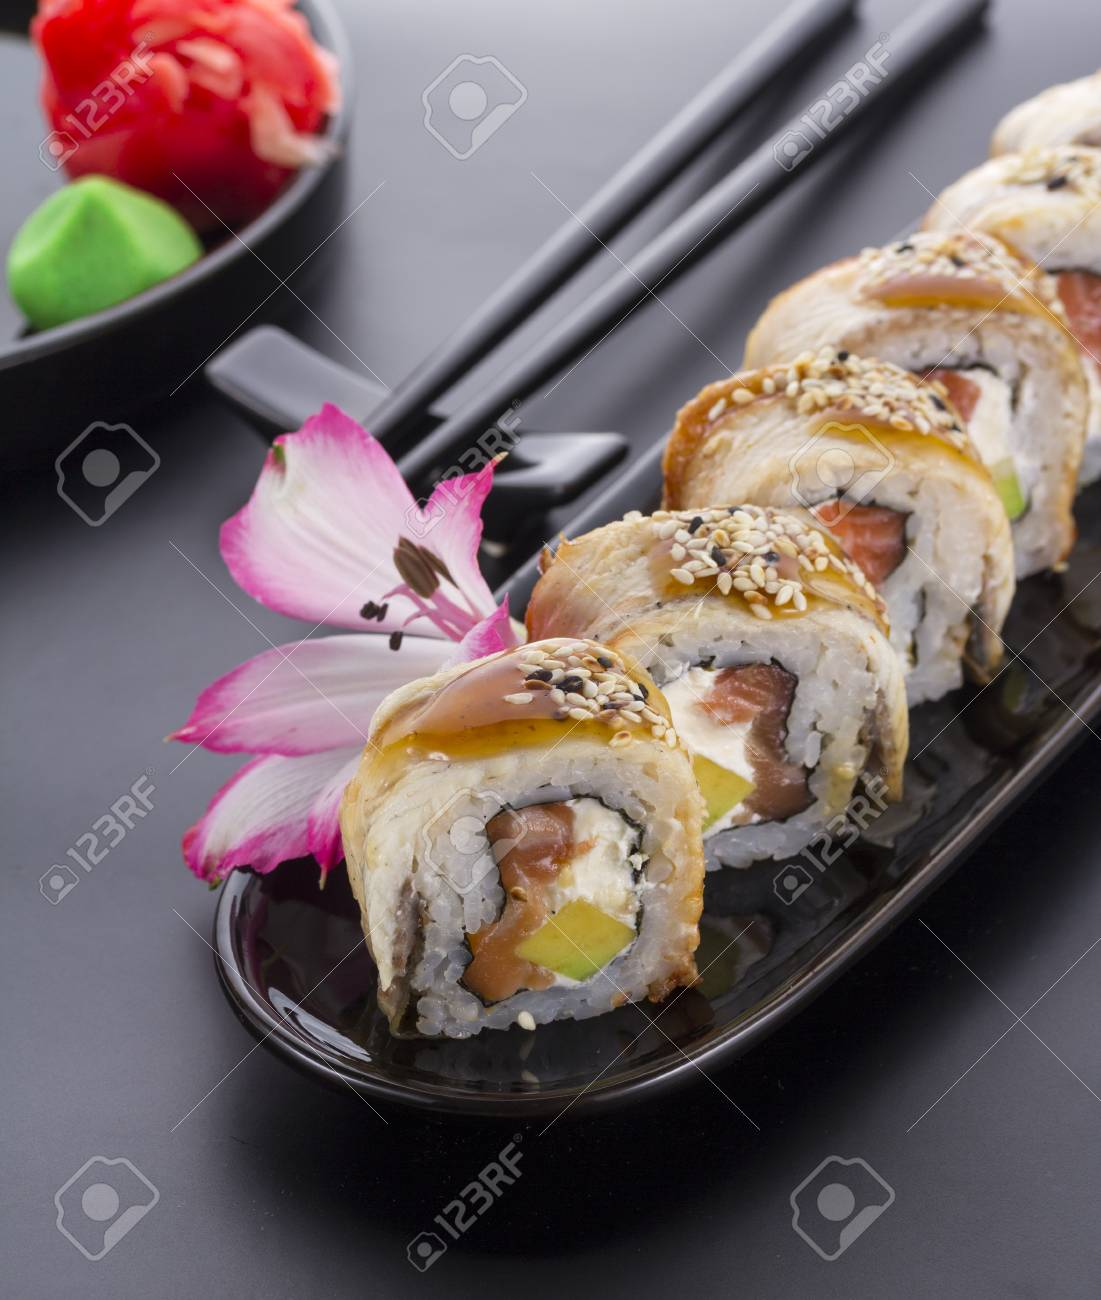 Eel Sushi Roll On A Black Plate With Flower Decoration Stock Photo 53779622